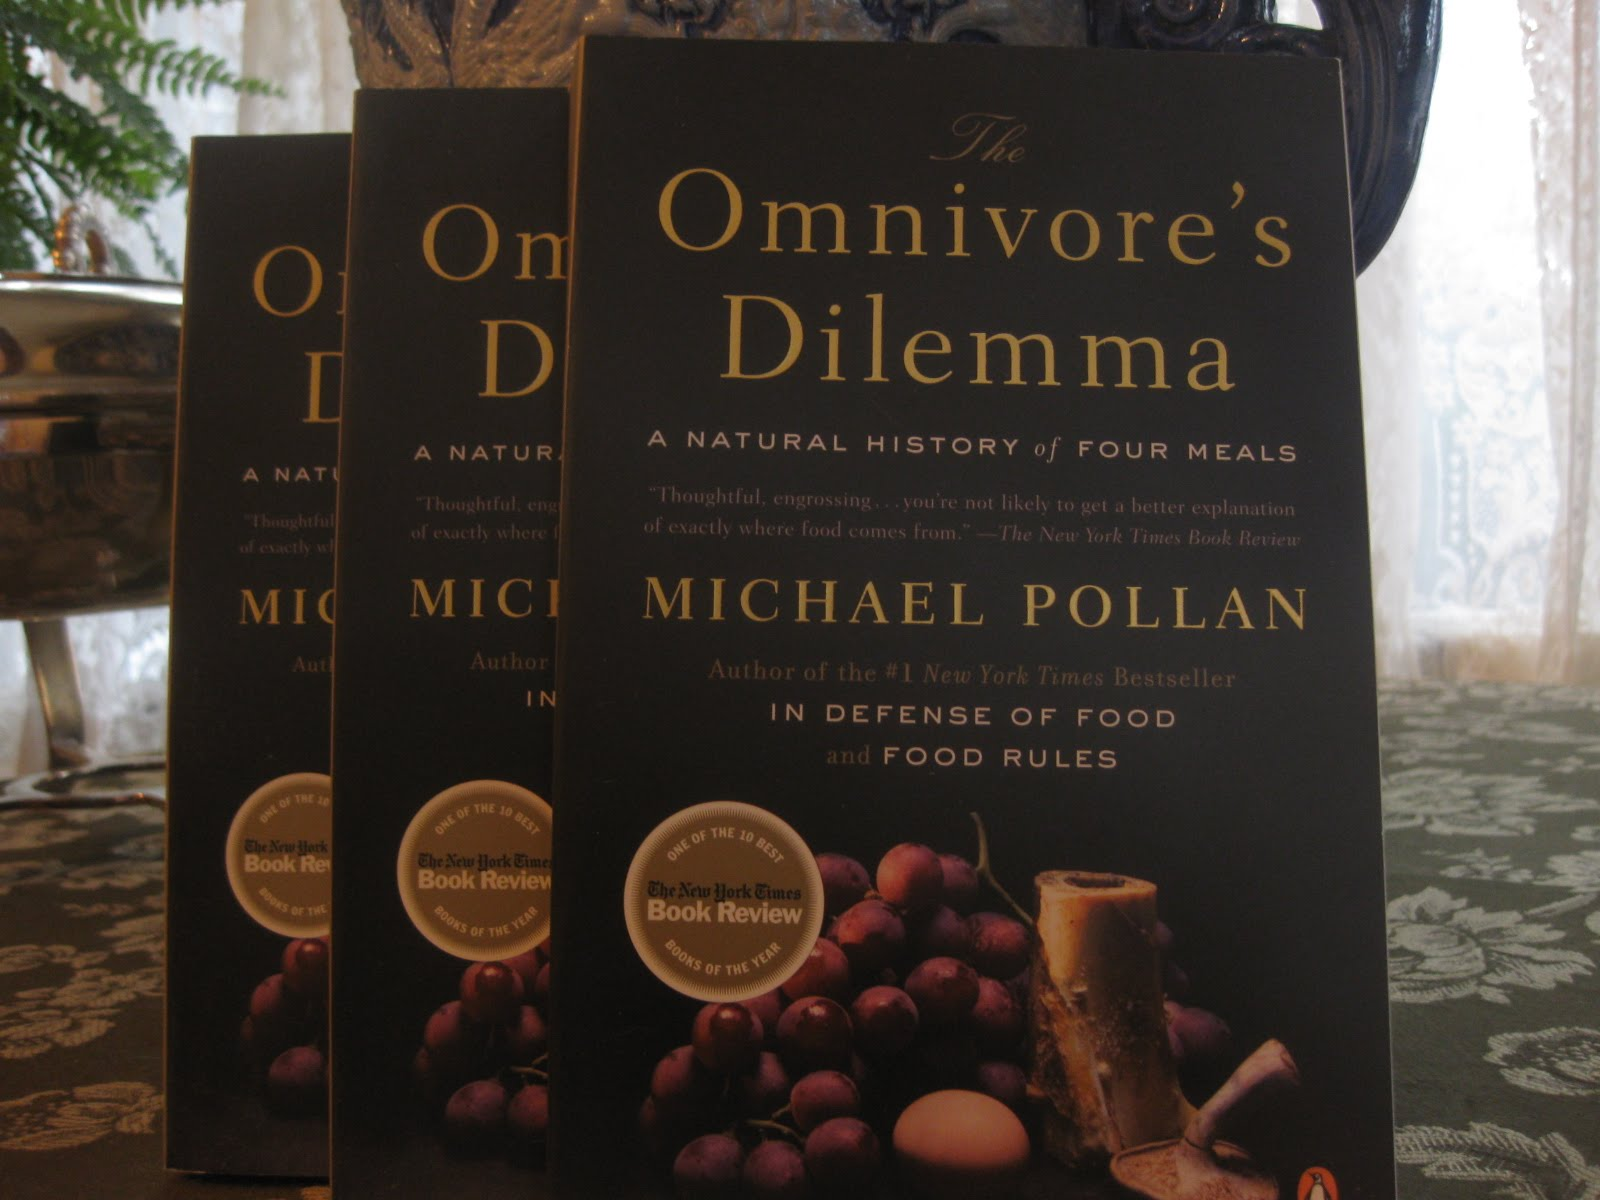 December Giveaway: The Omnivore's Dilemma